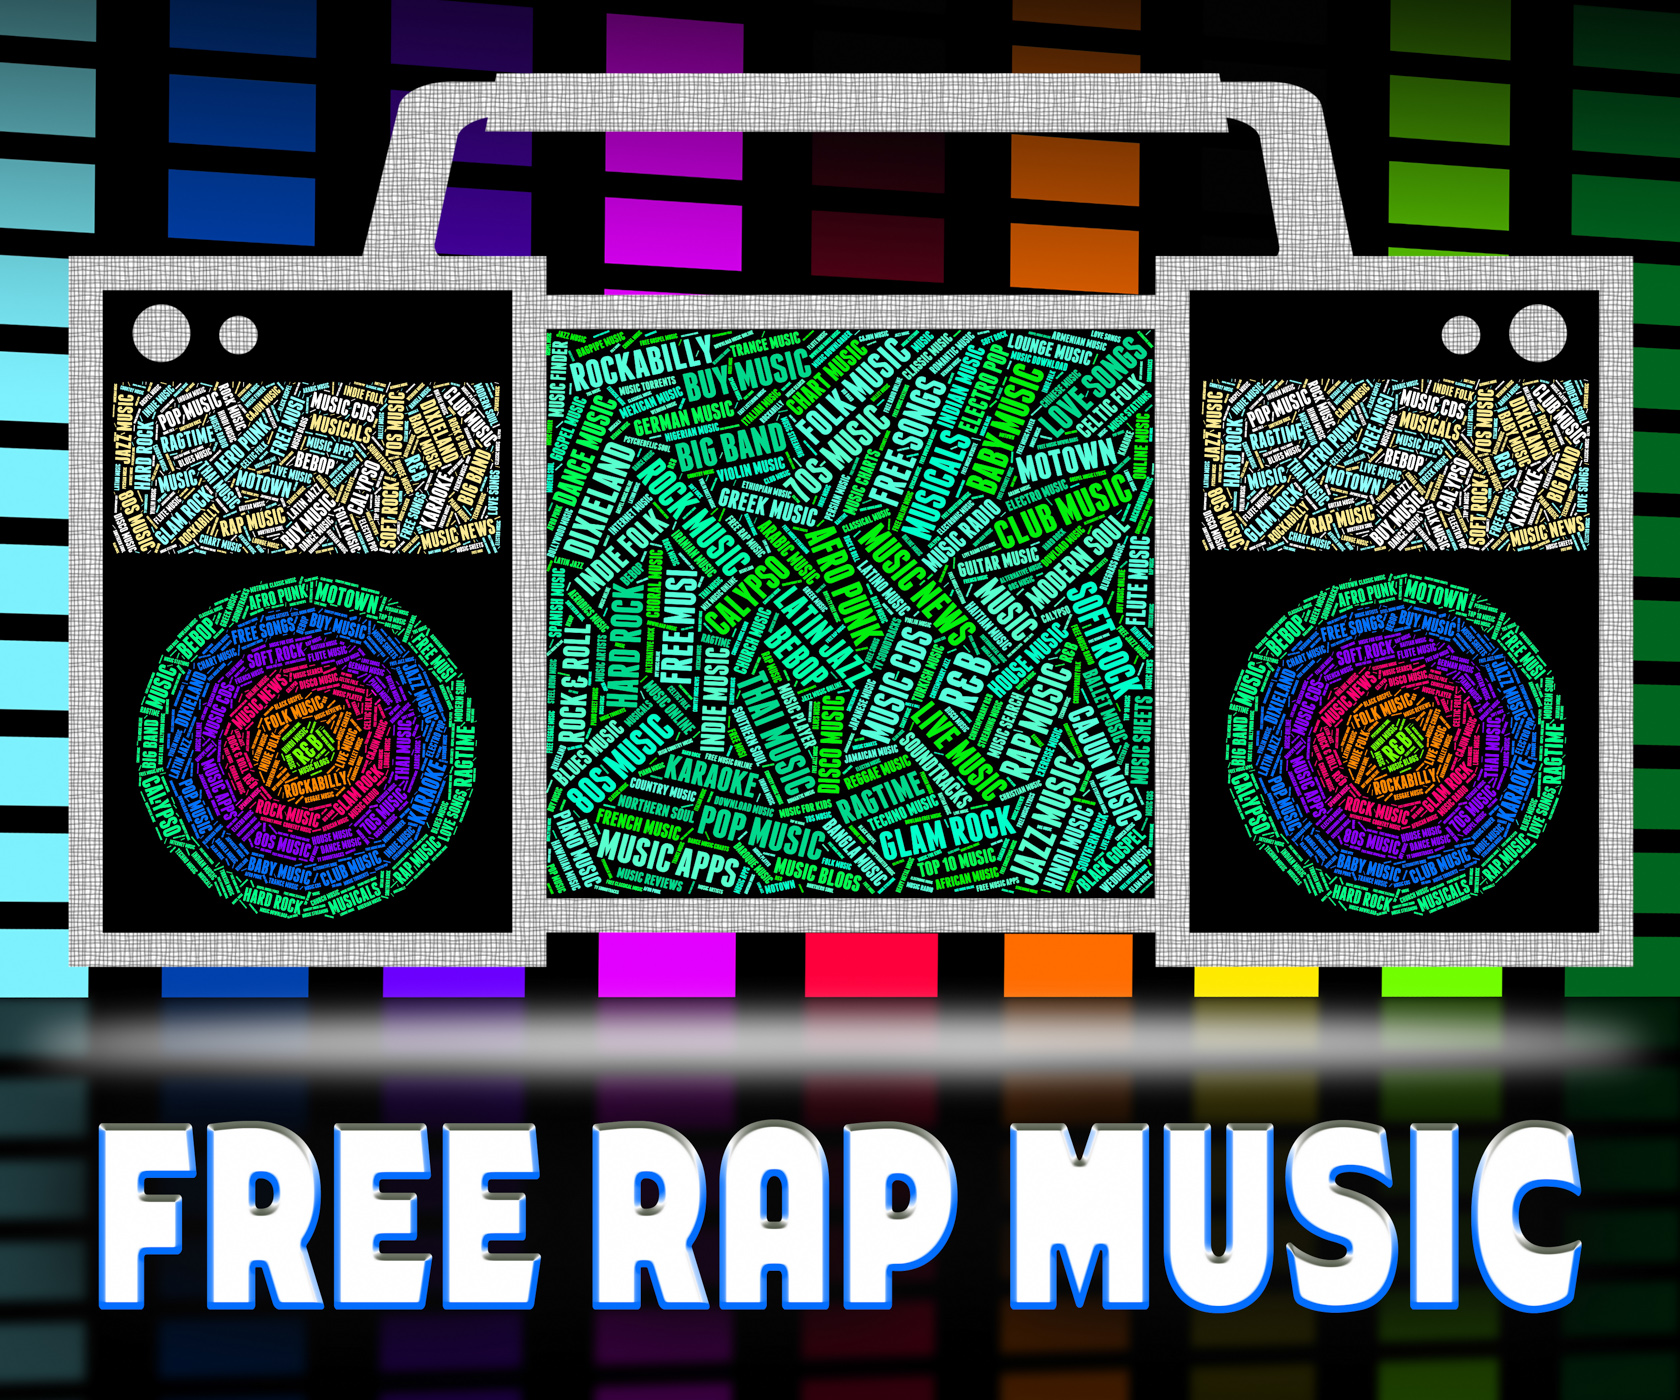 Free rap music shows no cost and emceeing photo